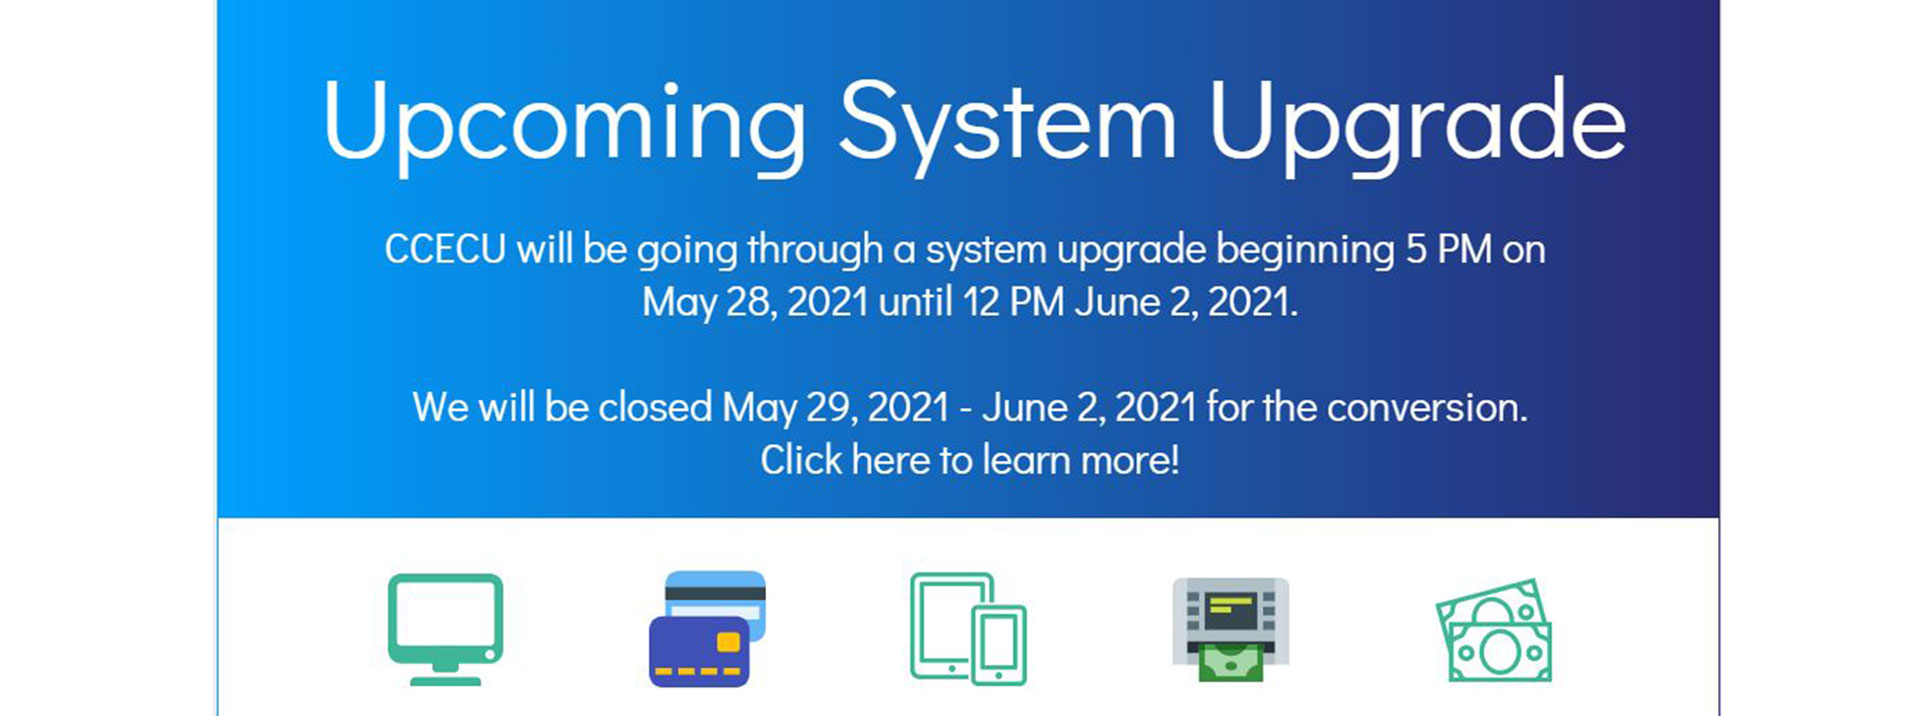 CCECU will be closed May 29 - June 2 for a system upgrade